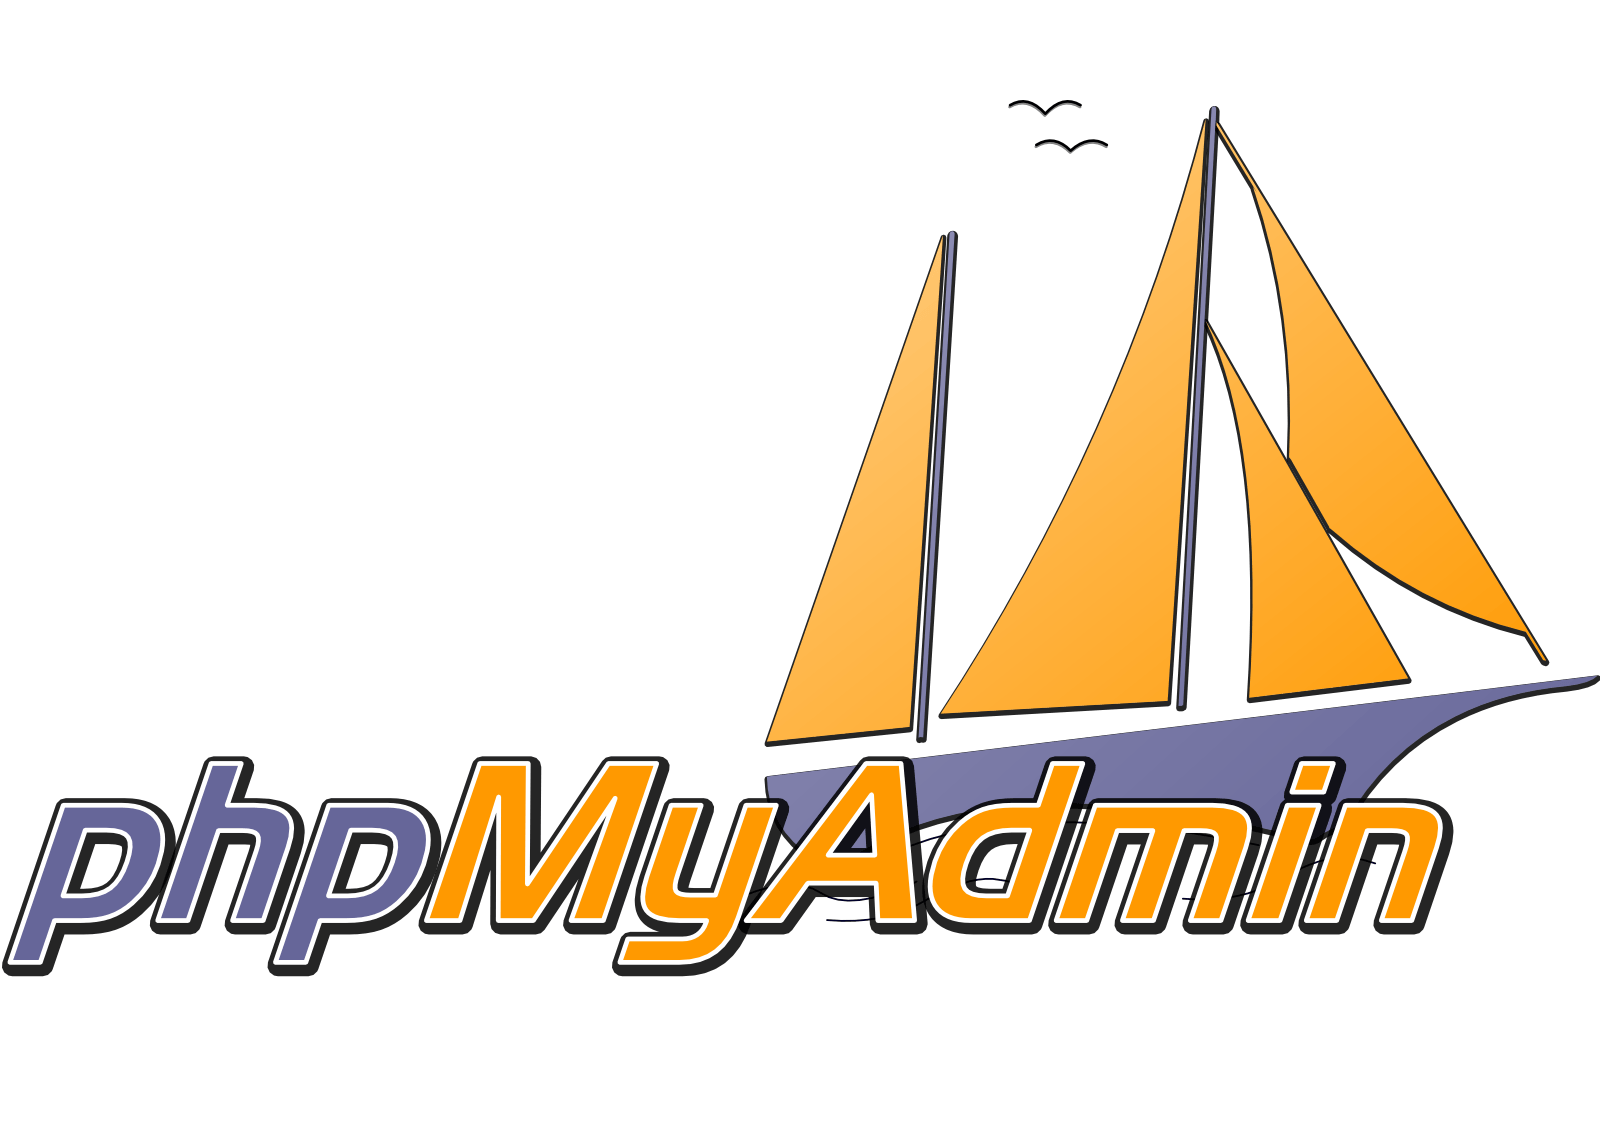 Install phpMyAdmin on our dev environment